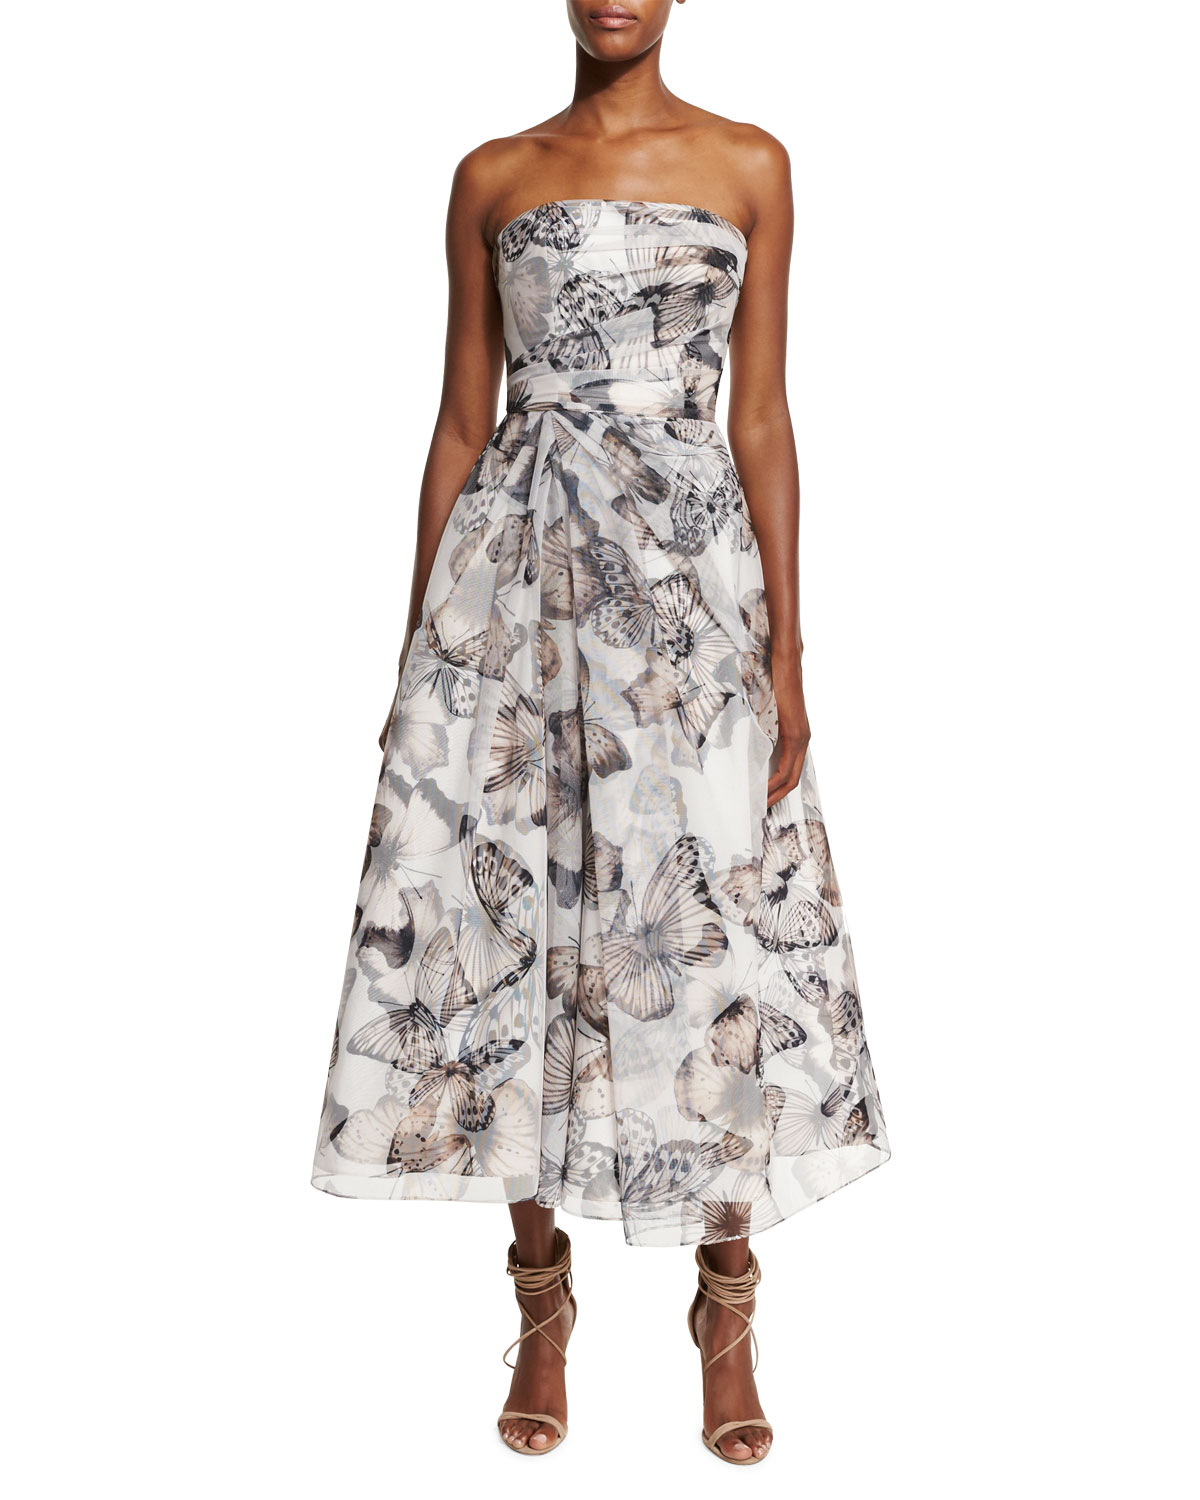 ac30332f006 ML Monique Lhuillier Strapless Butterfly-Print Midi Cocktail Dress ...